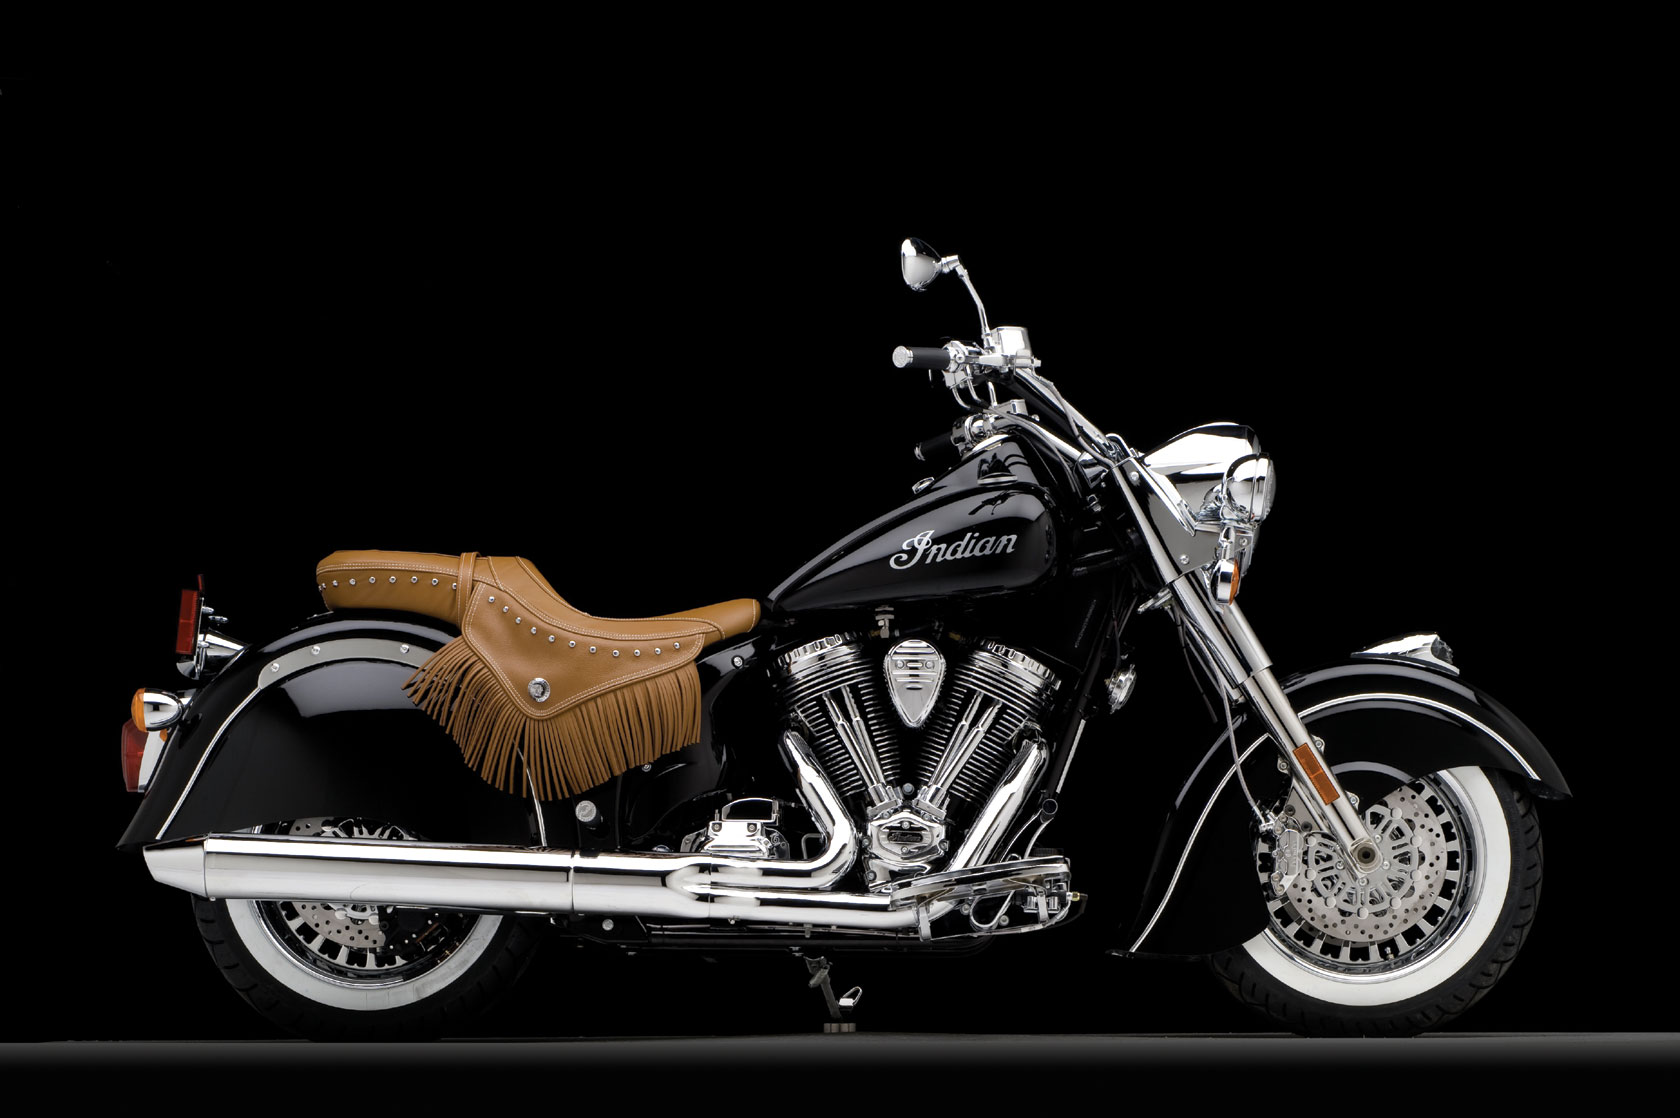 Indian Chief Deluxe 2009 images #99297